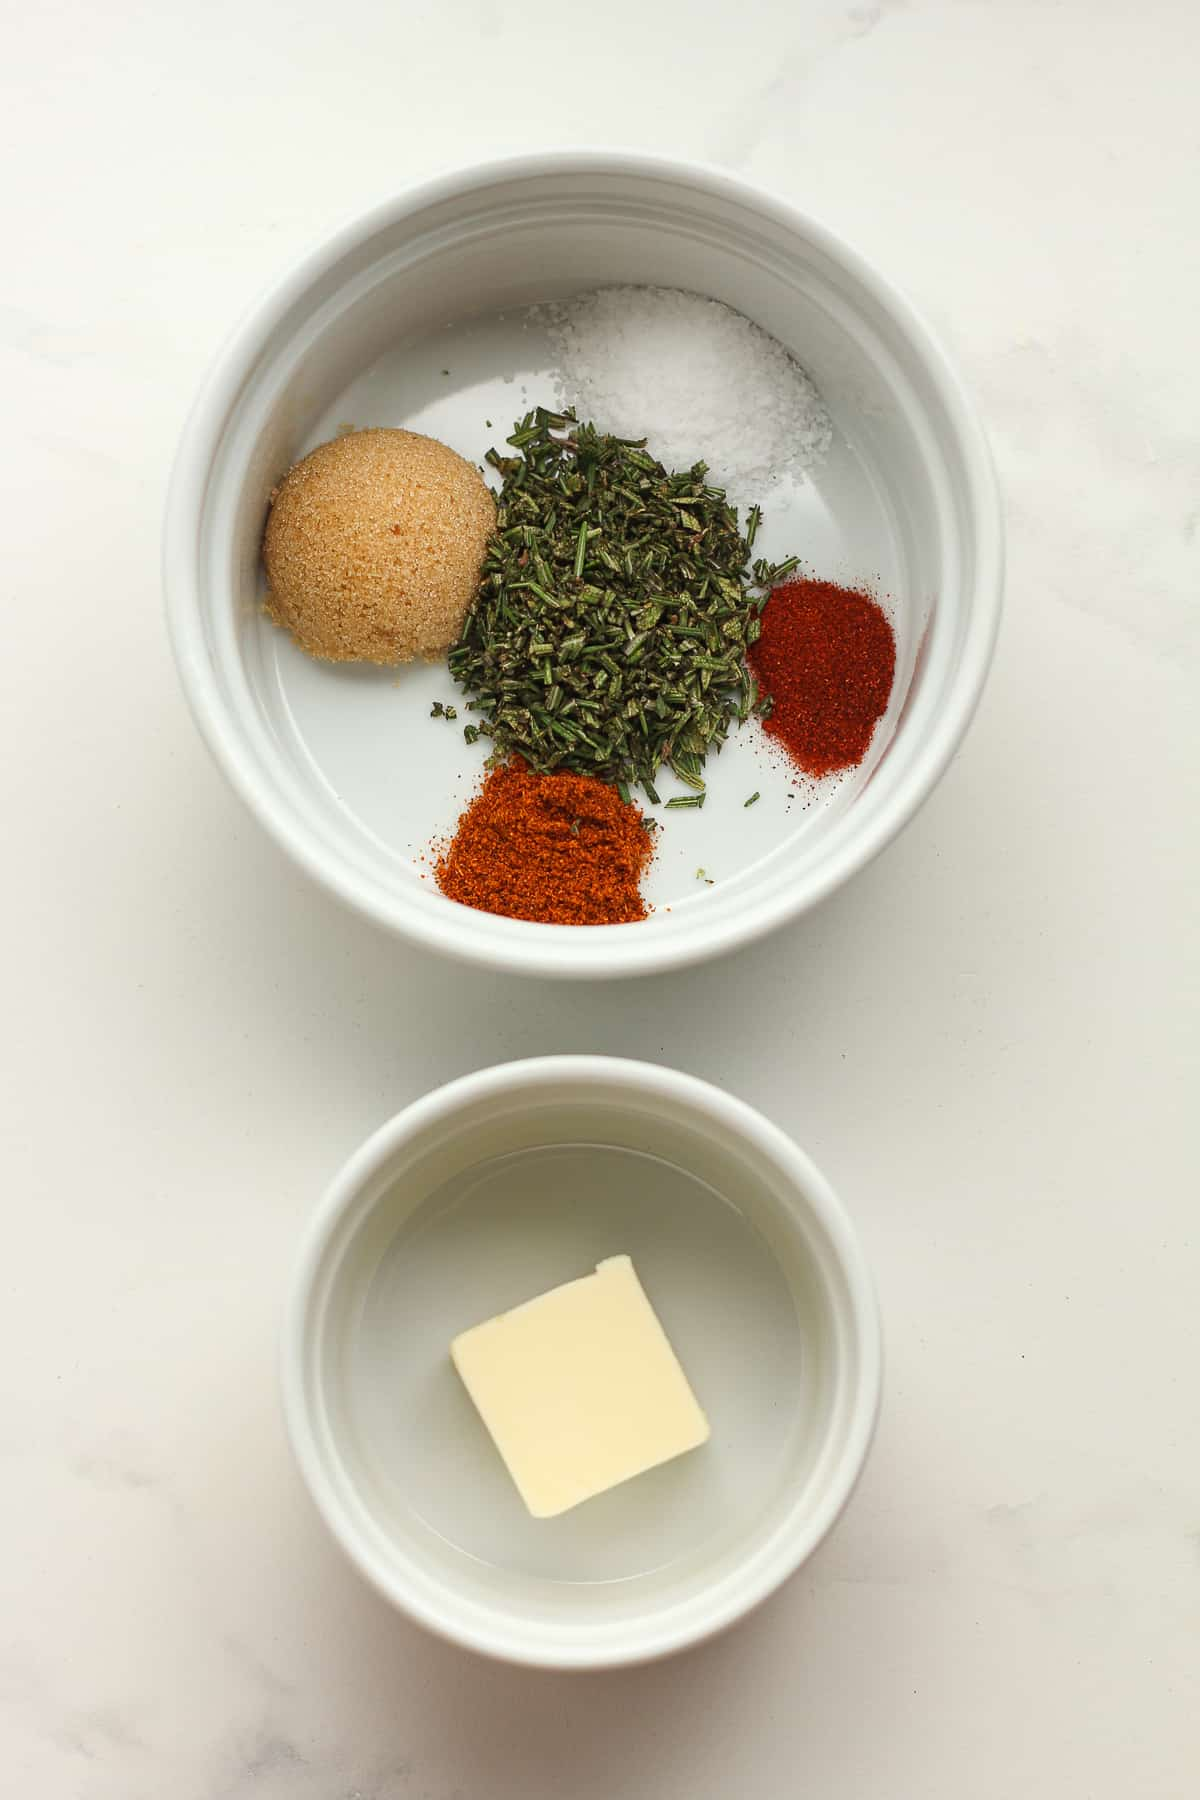 A bowl of the seasonings and a bowl of the butter.